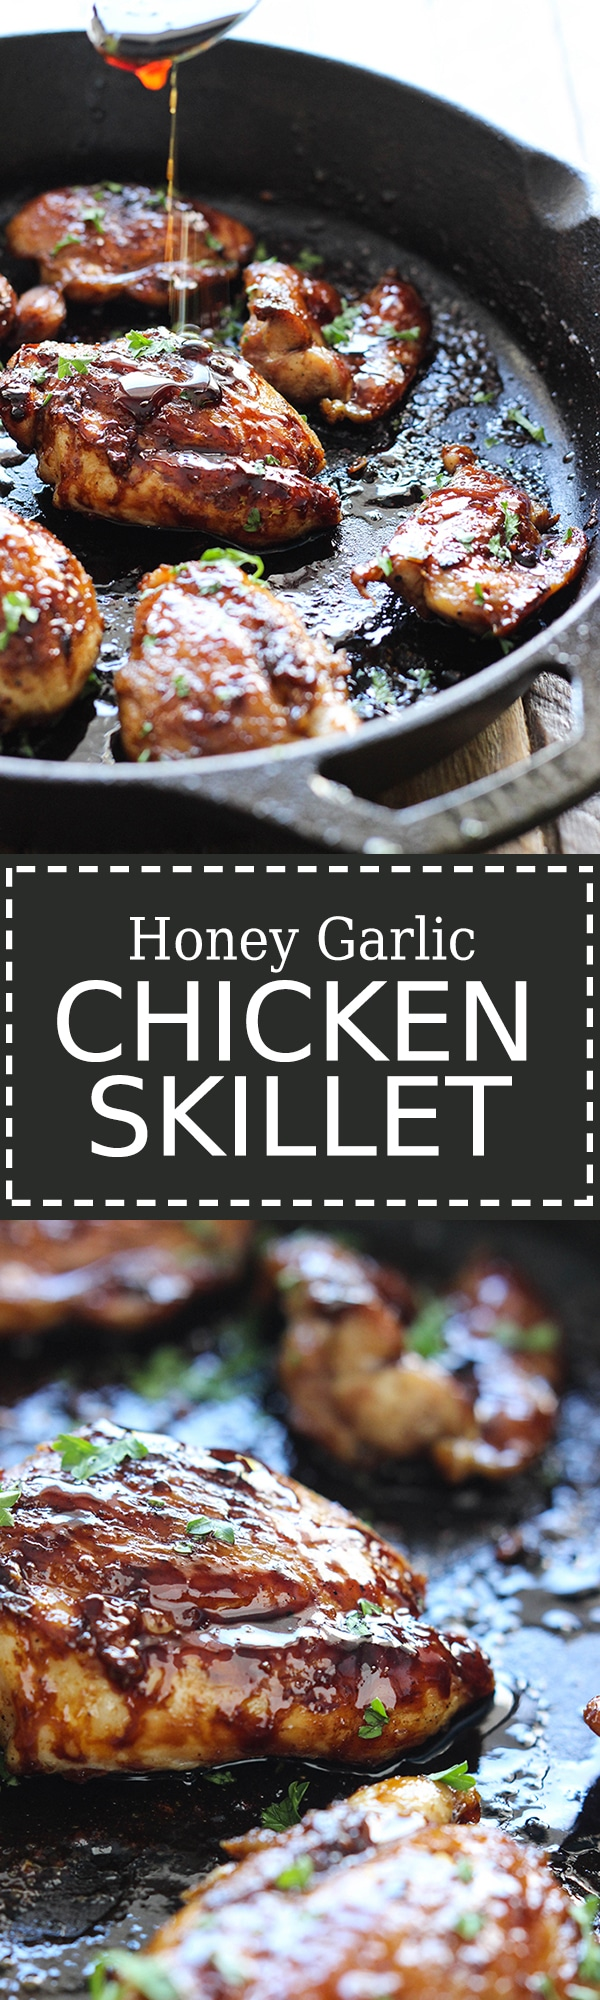 pics Honey-Soy Skillet Chicken